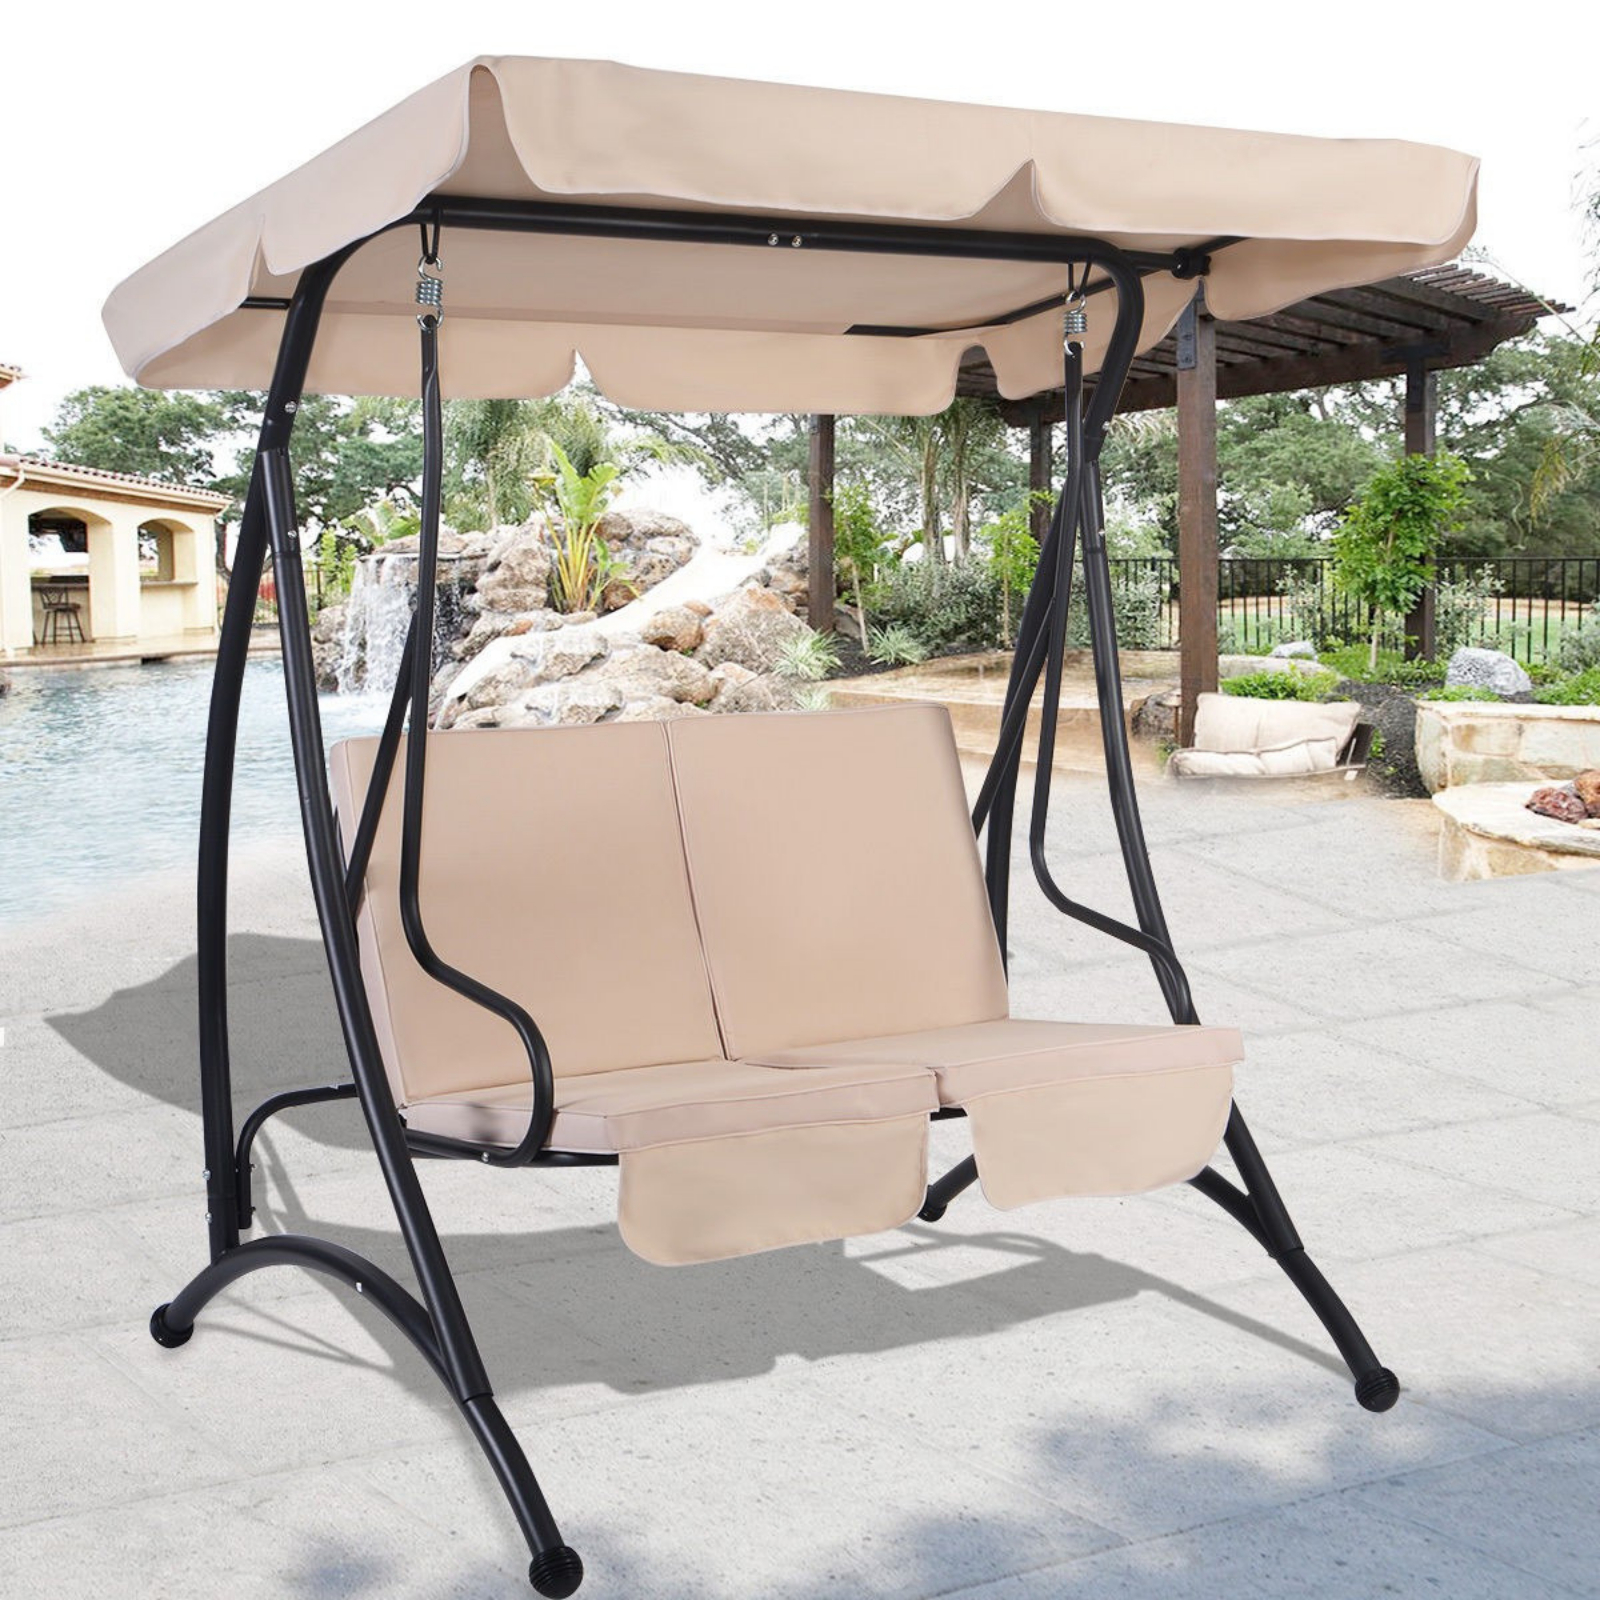 Outdoor Swing With Canopy 2 Person Patio Porch Steel Swing Double Hanging Seat Pertaining To Patio Gazebo Porch Swings (View 23 of 25)